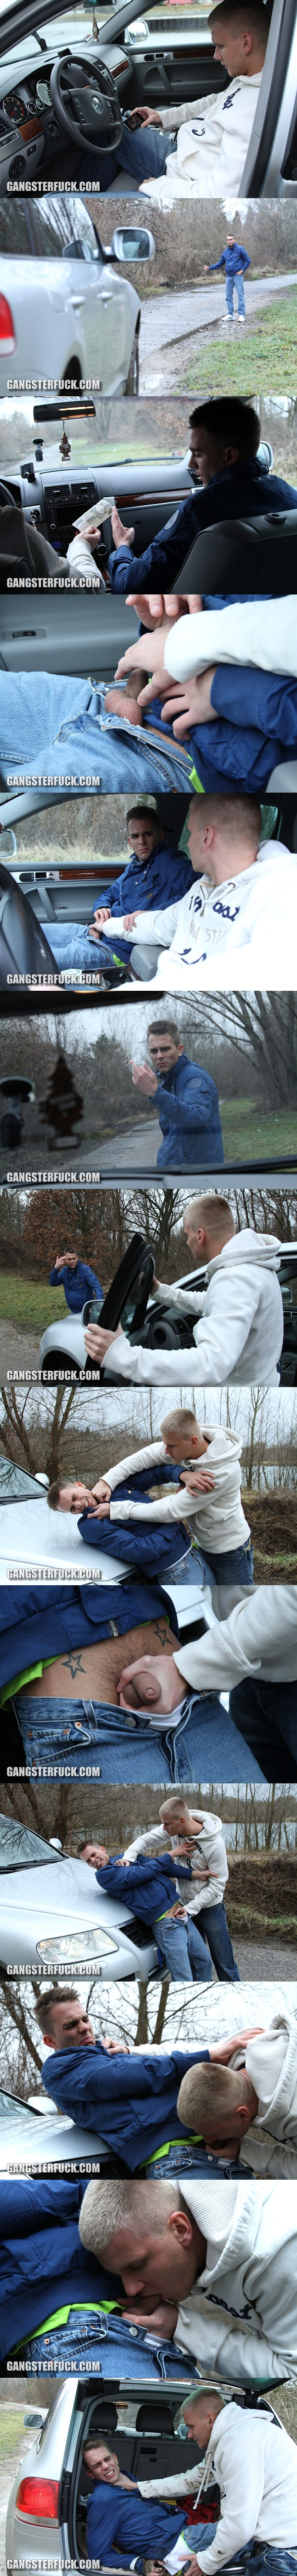 Handsome blond Lubos forces cute boy Jan to have sex in The Hitchhiker episode 01 at Gangsterfuck 01